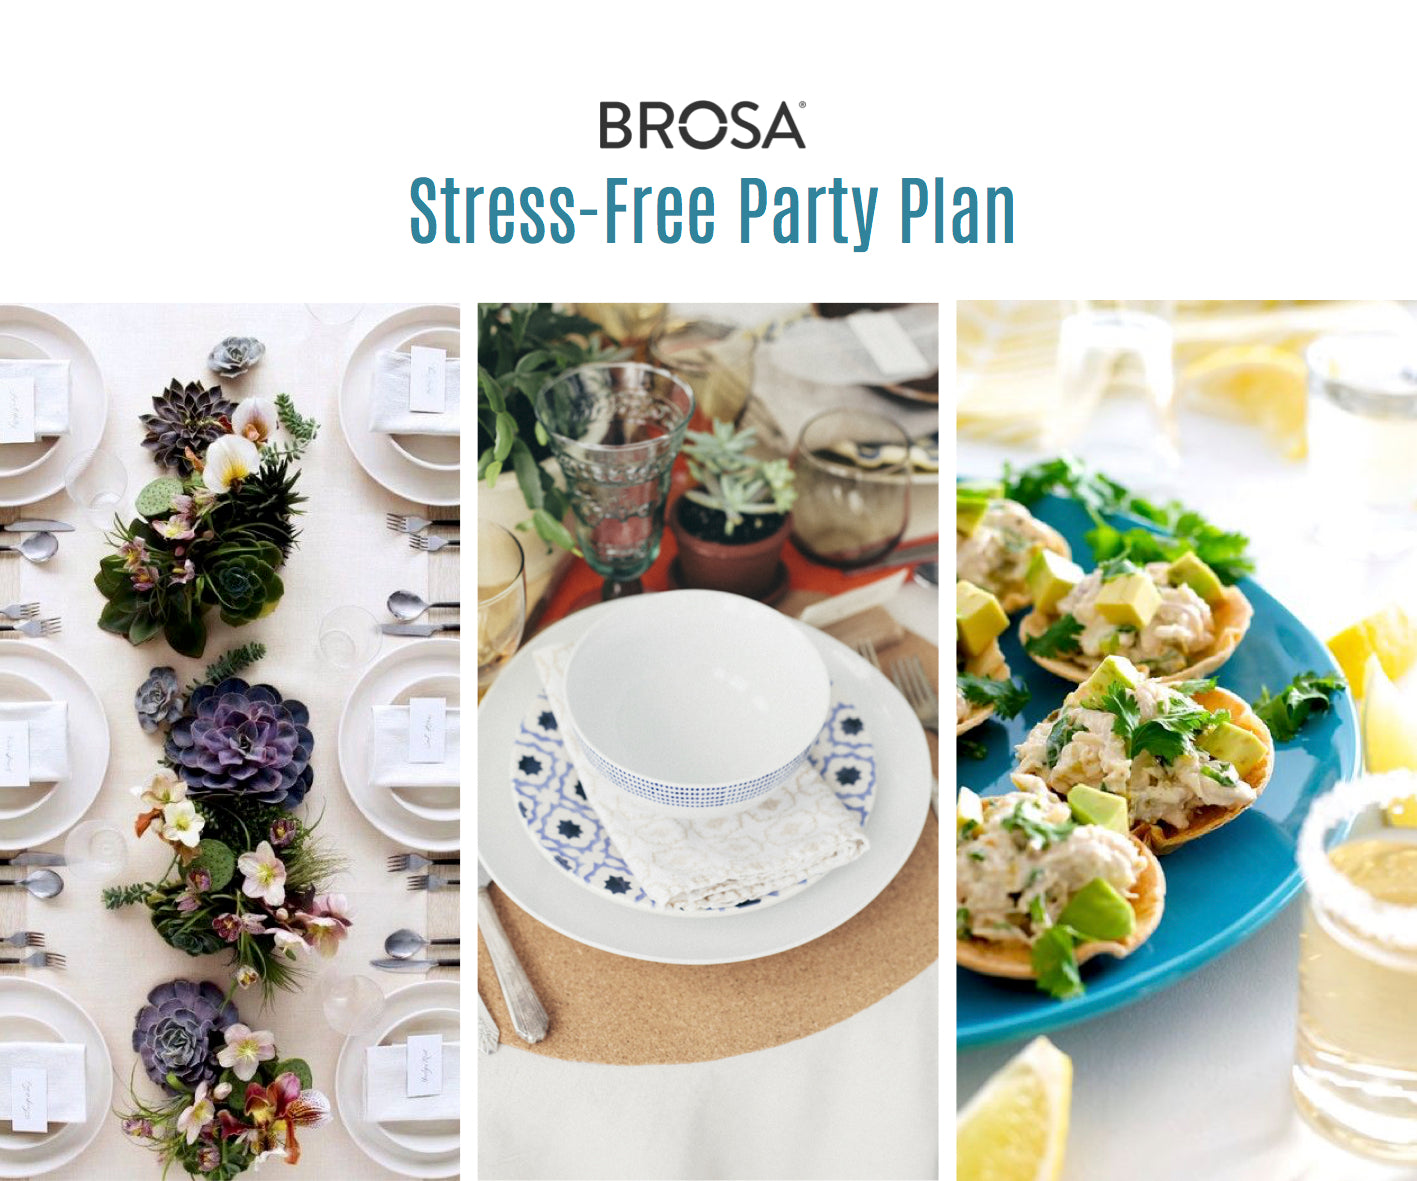 Brosa's Stress Free Party Plan